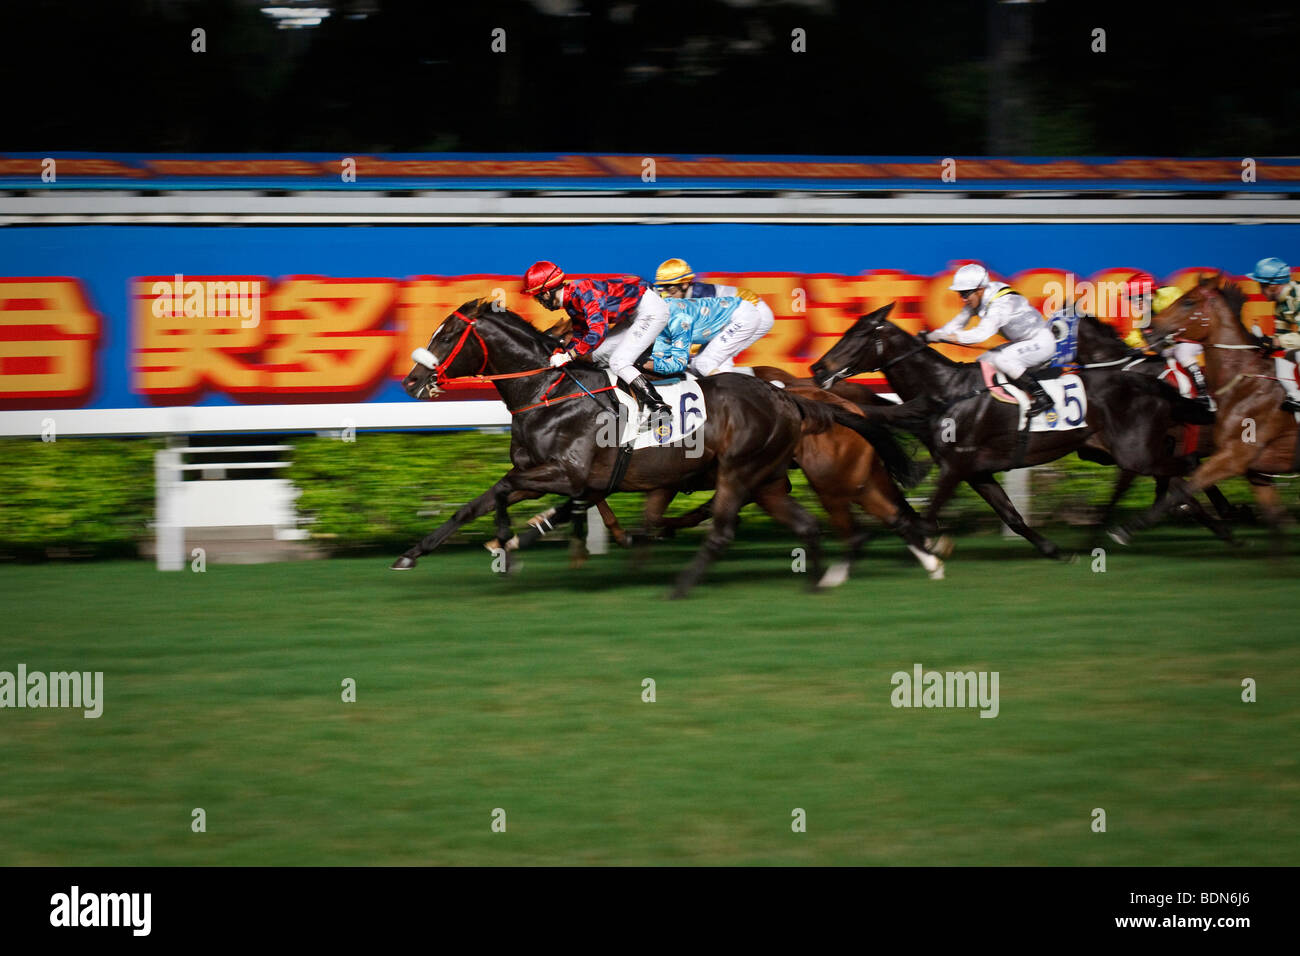 A final gallop to the finish at a night horse racing event at Happy Valley race course in Hong Kong. - Stock Image